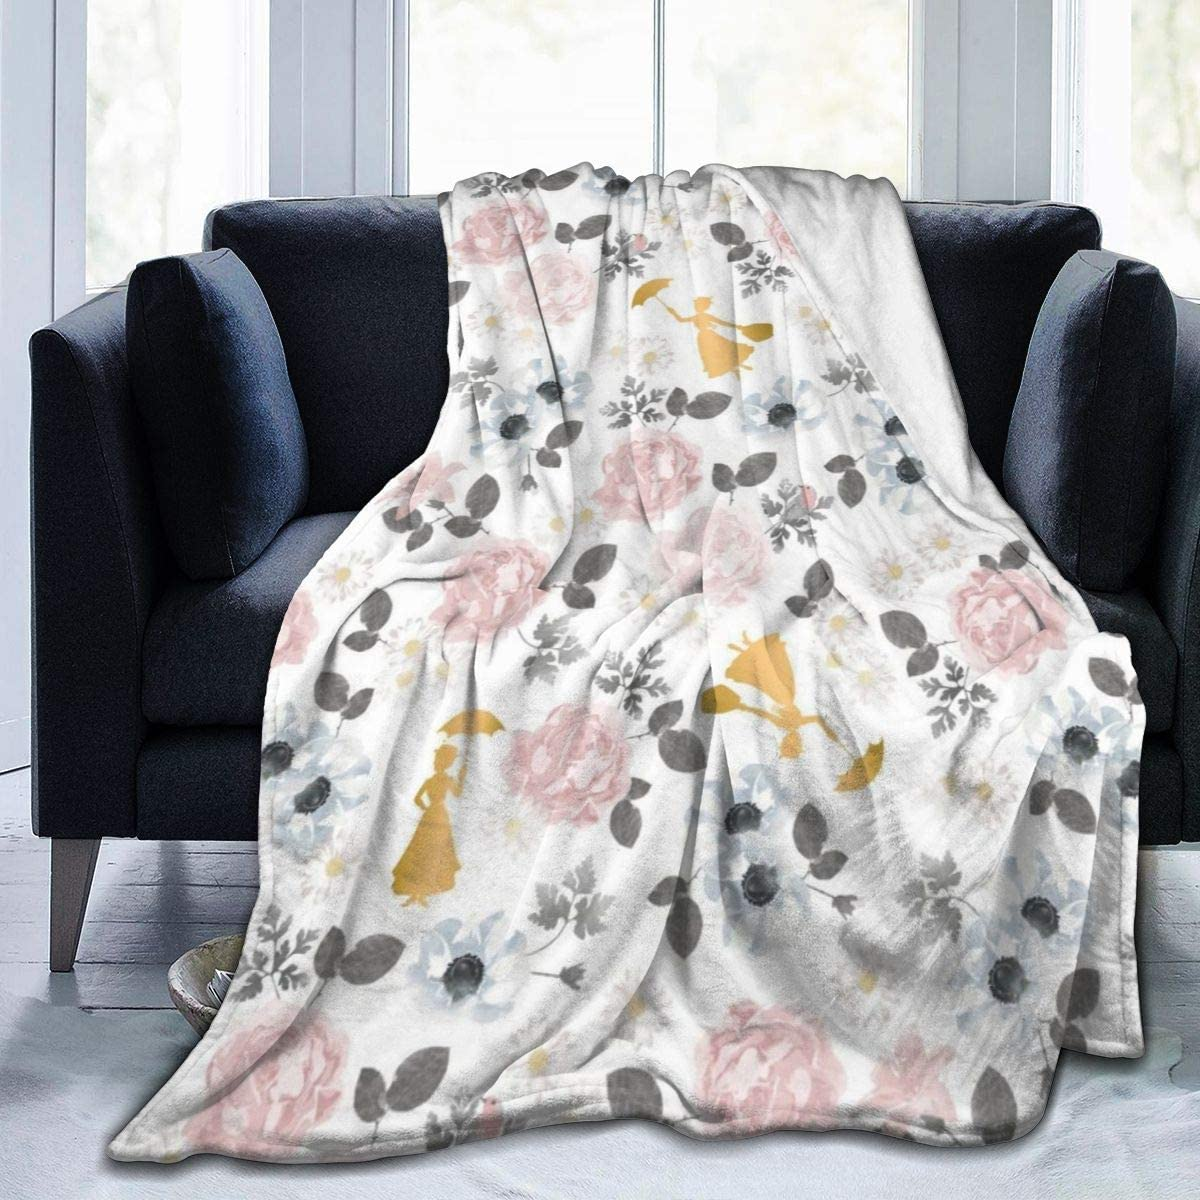 shirt home Camelot Fabrics Mary Poppins Flannel Fleece Throw Blanket Super Soft and Warm Fuzzy Plush Cozy Luxury Bed Blankets 60X50 Inch